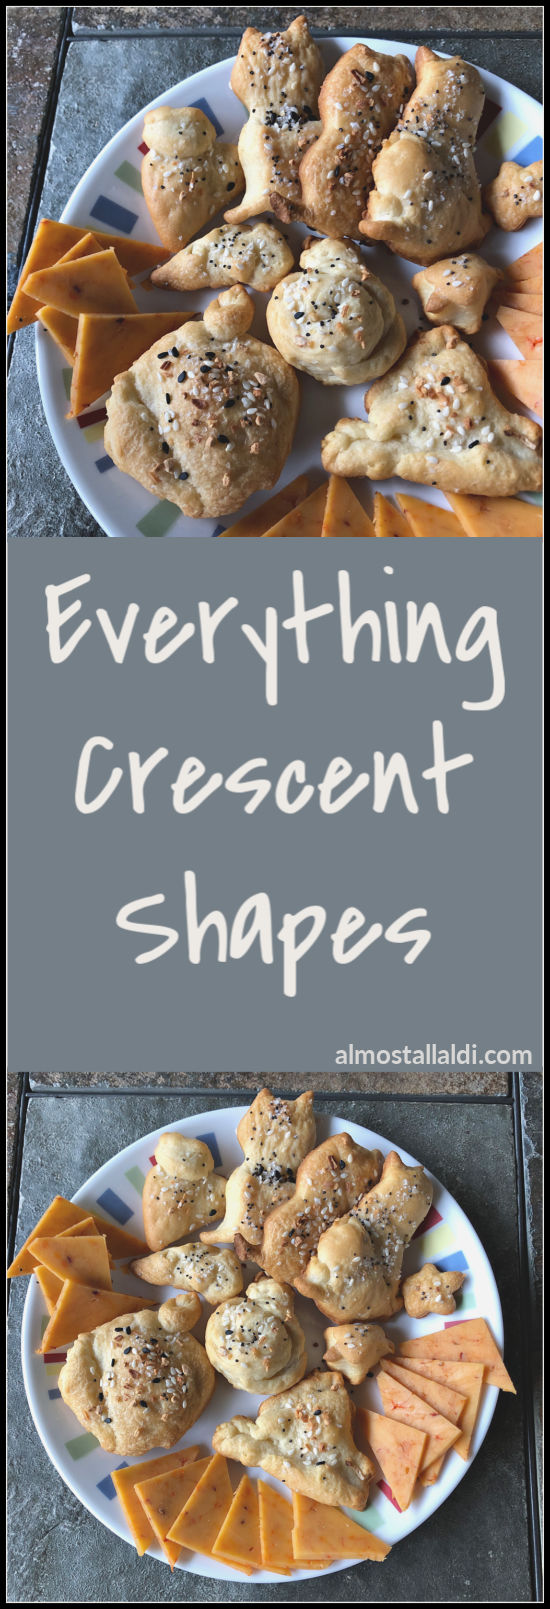 Everything Crescent Shapes is an easy two ingredient all-ALDI recipe that goes so nicely on a charcuterie board! Try something different with your next can. | almostallaldi.com